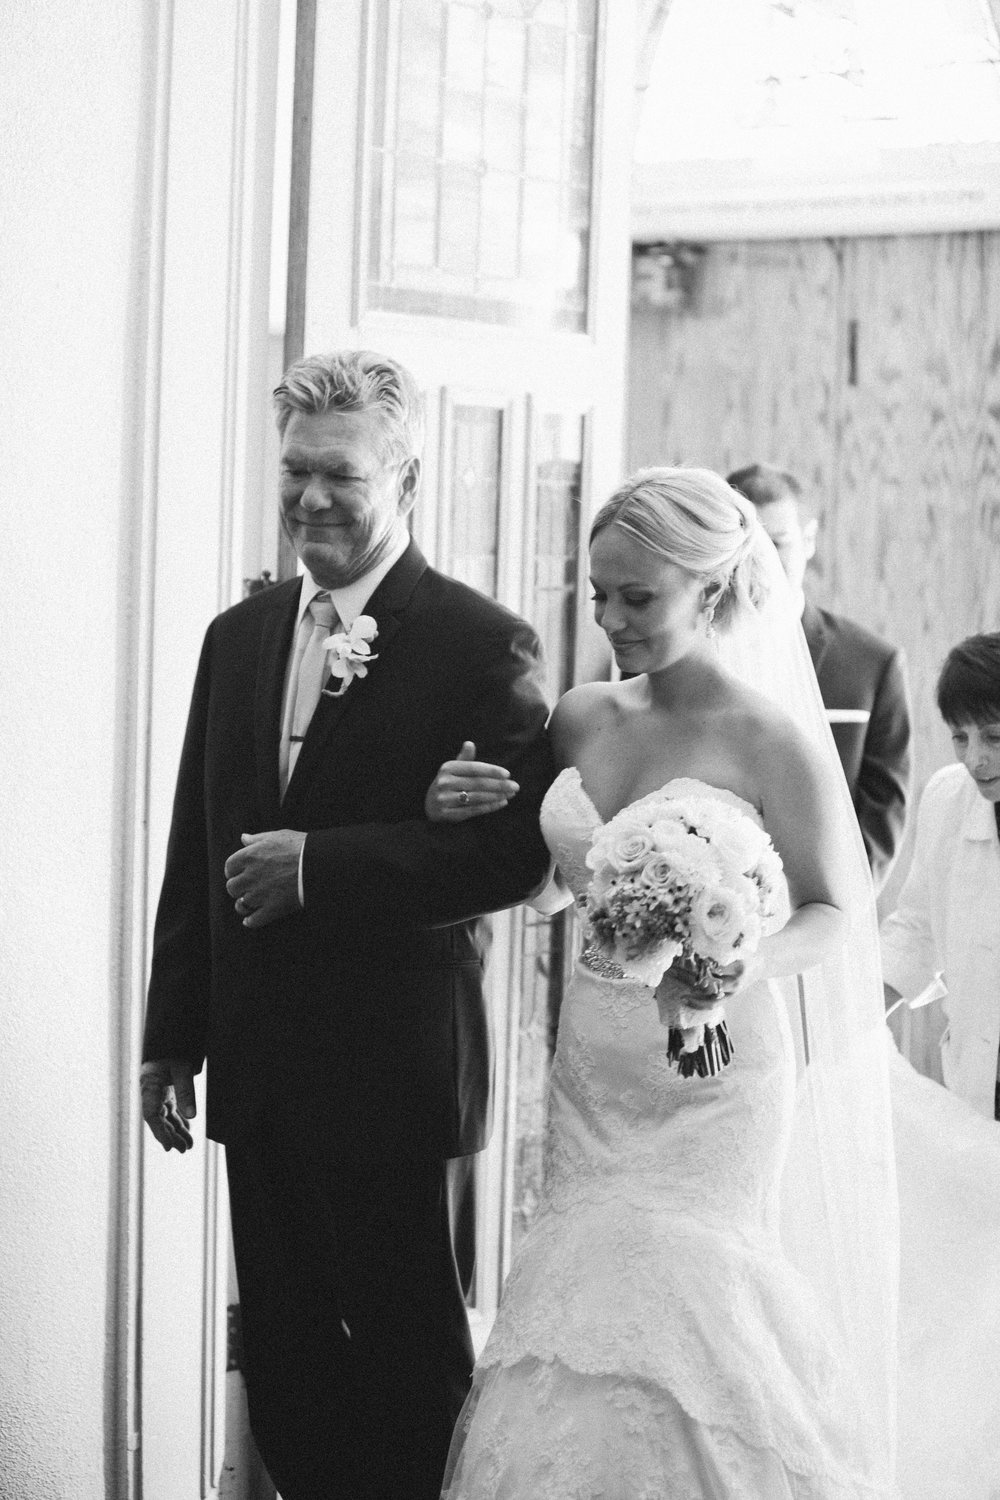 Here is the photo of my father and I as the doors opened and we started down the isle. Photo Credit: Brumley And Wells